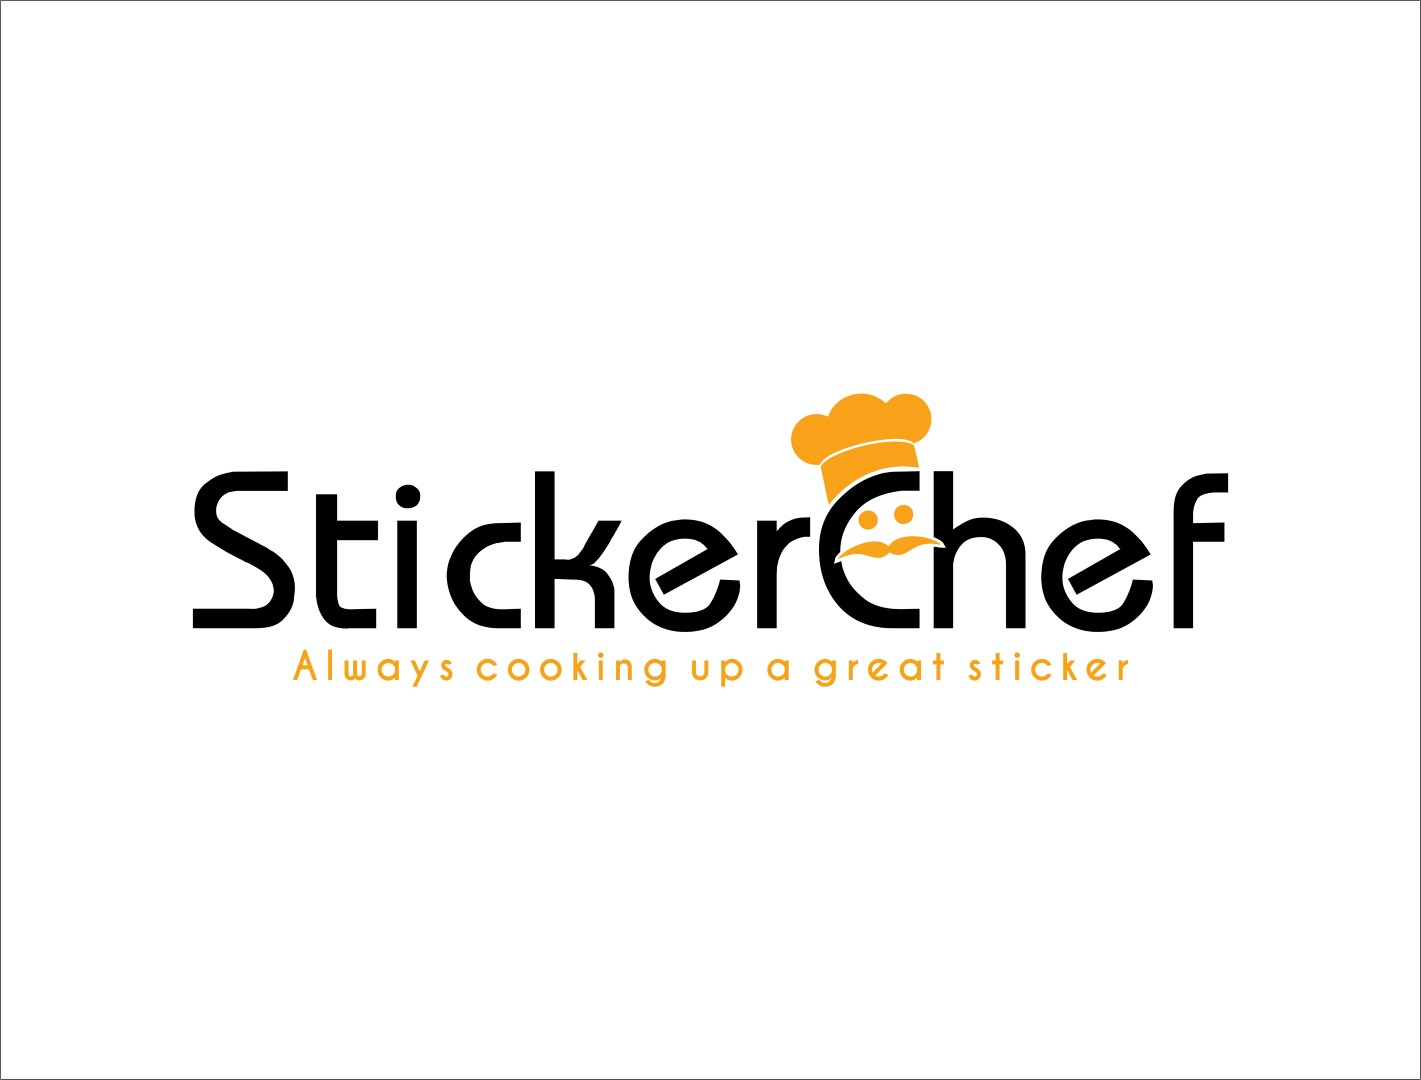 StickerChef